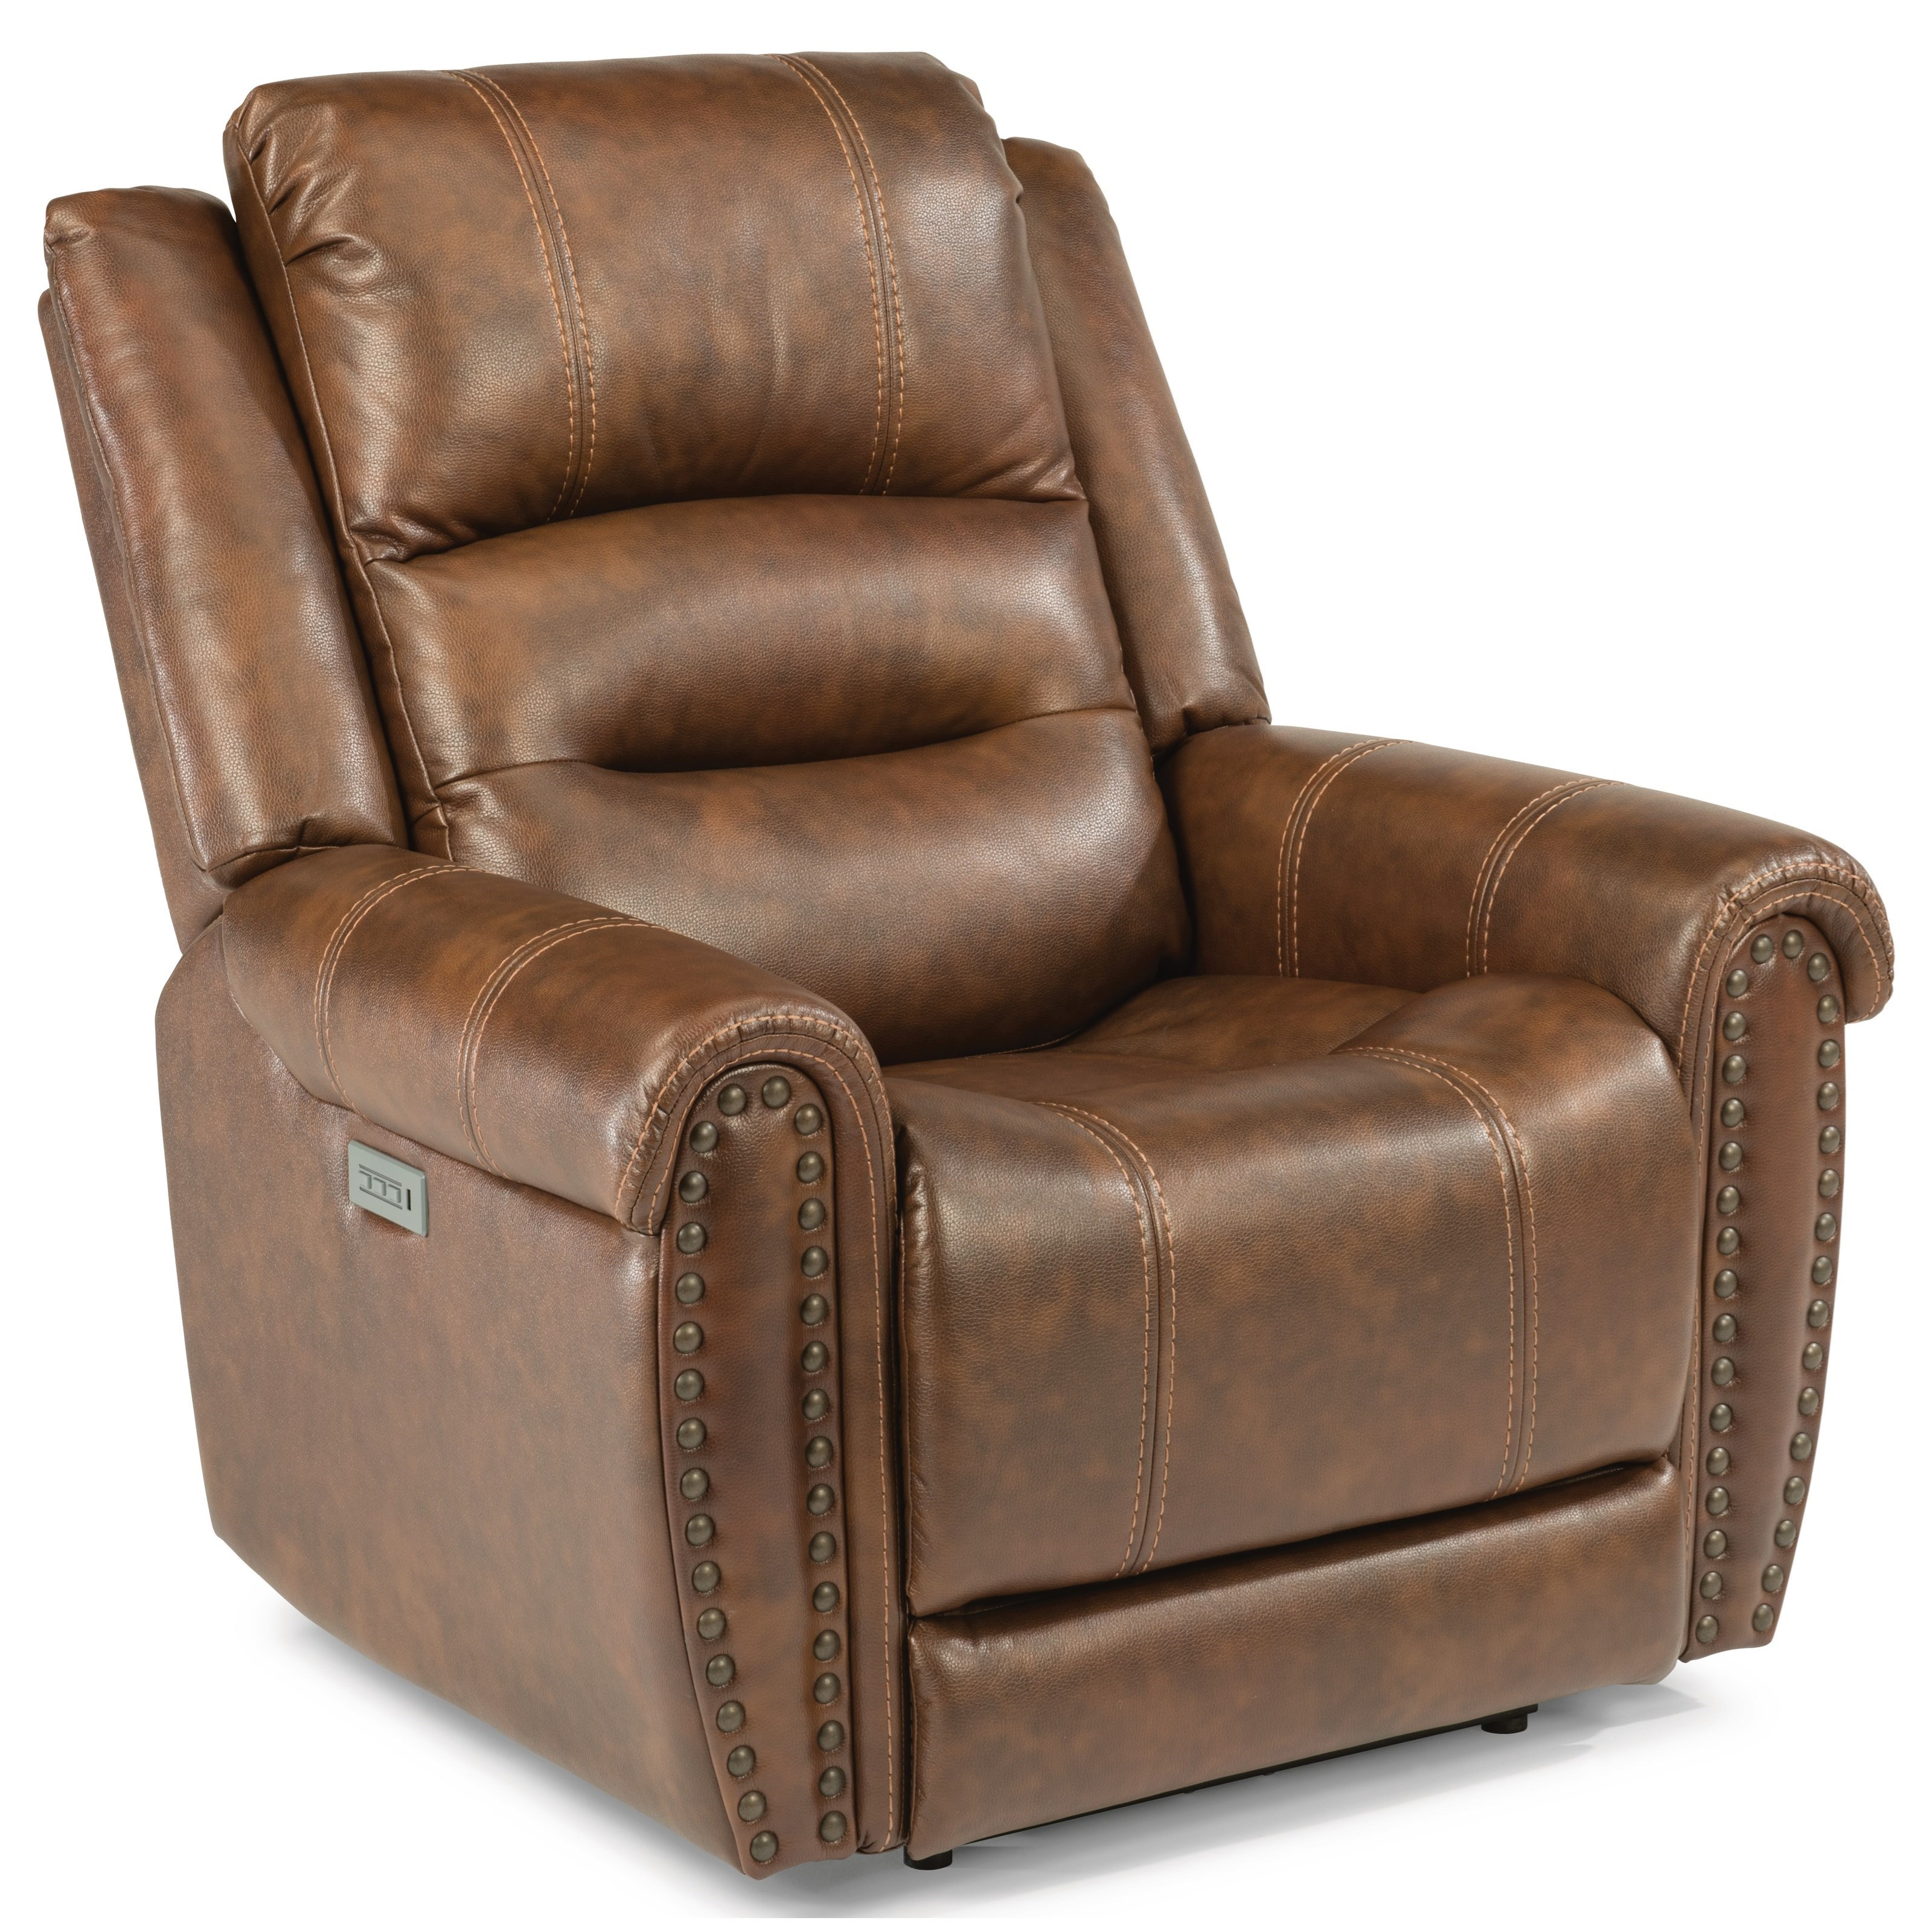 Flexsteel latitudes oscar 1590 50ph power recliner with for Furniture helpline